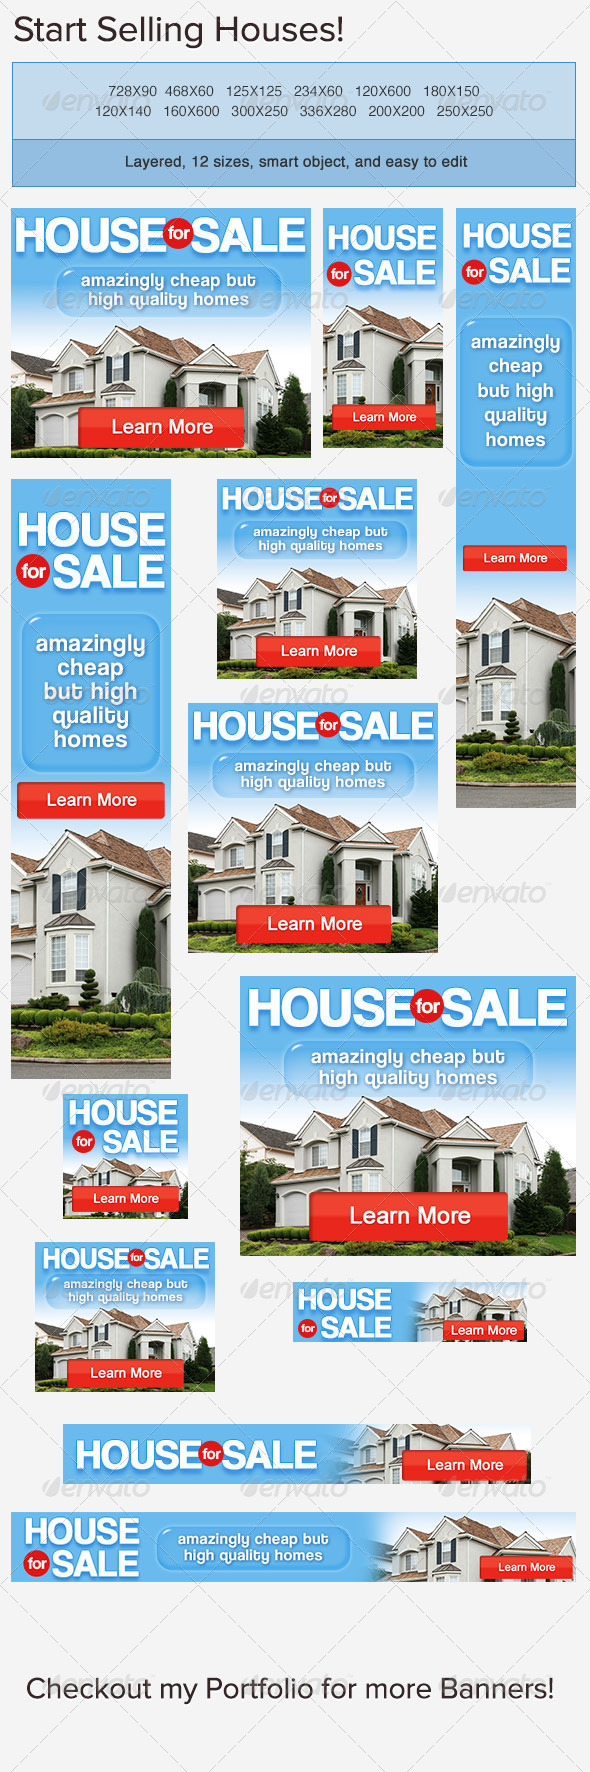 House for Sale Banner Ad PSD Template - Banners & Ads Web Elements